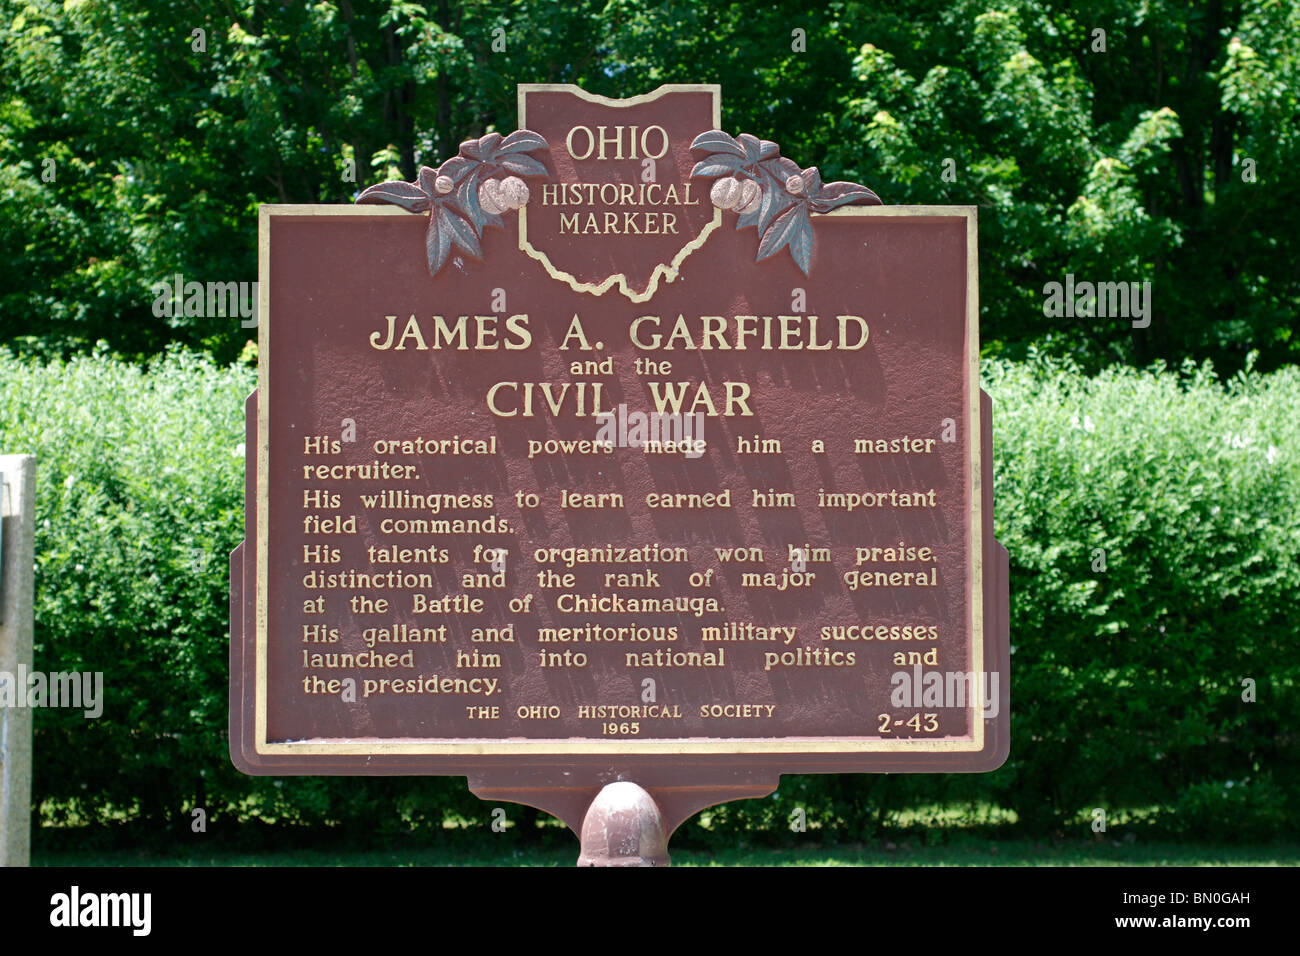 James A Garfield Monument Stock Photos Amp James A Garfield